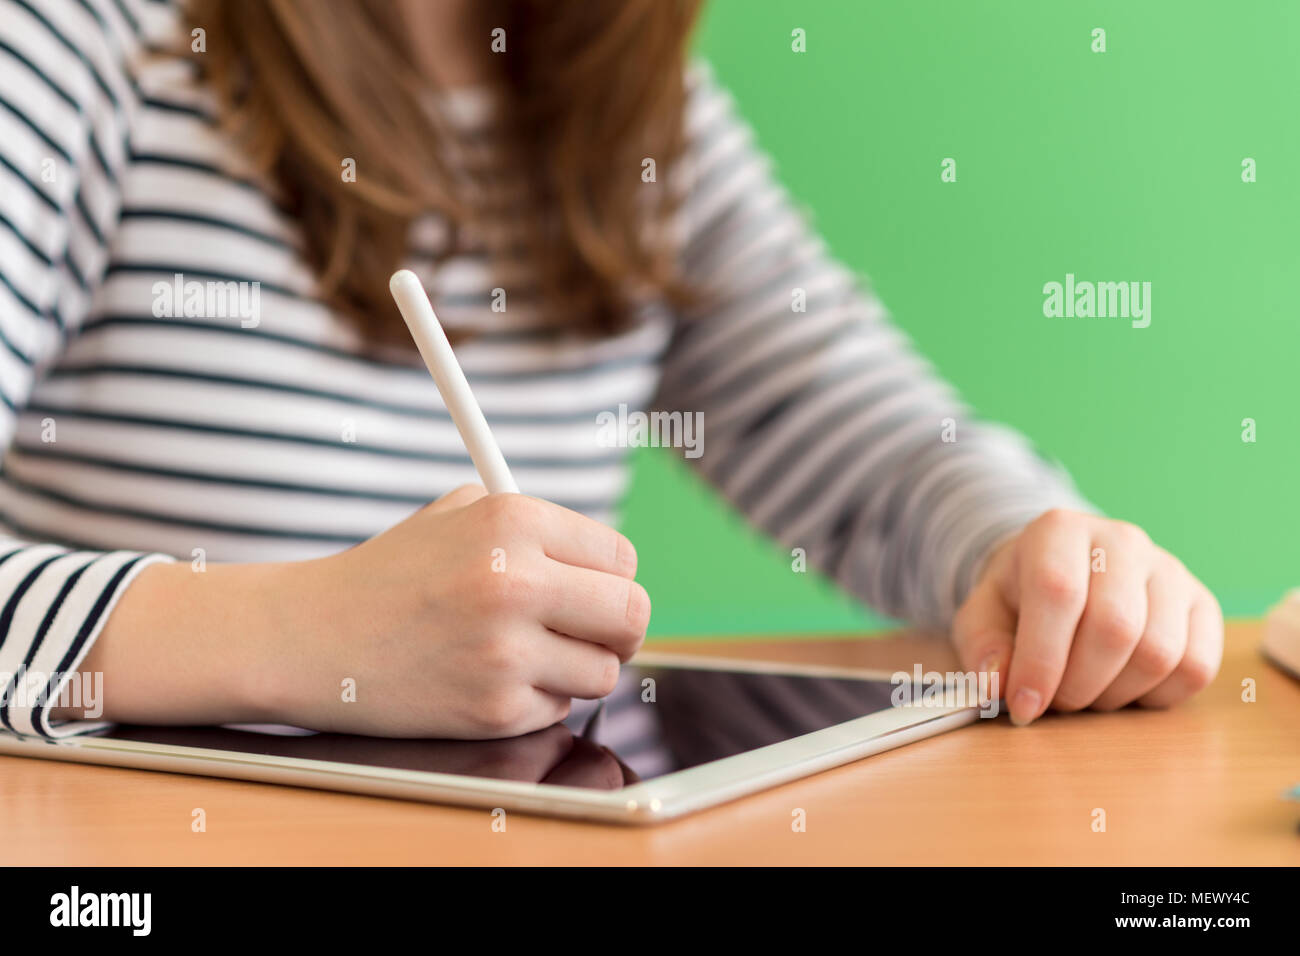 Young female student writing notes using digital tablet during class. Generation Z Education concept. - Stock Image